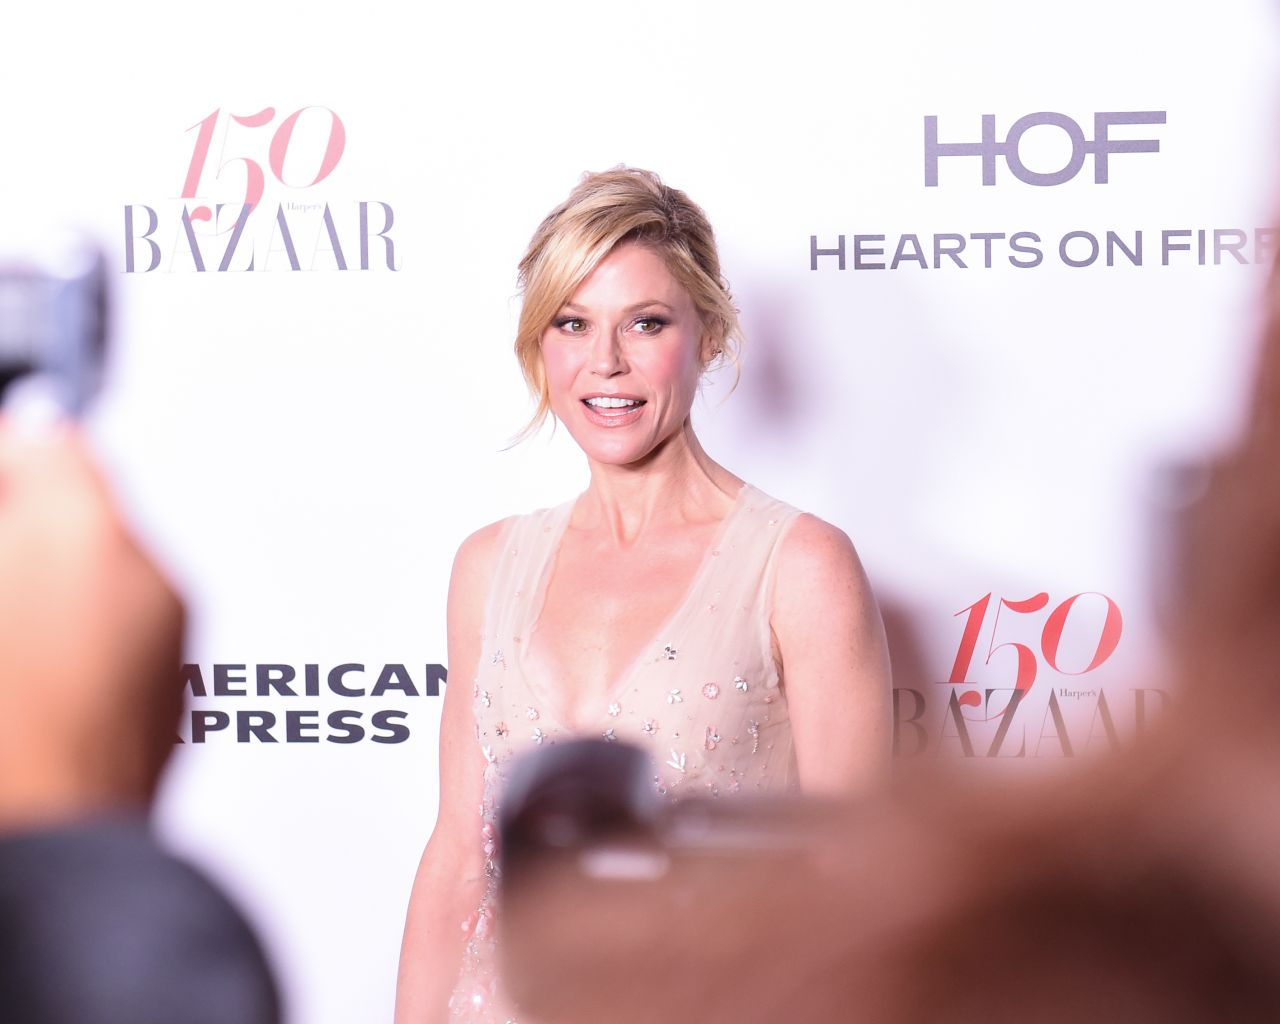 Julie bowen perfect woman